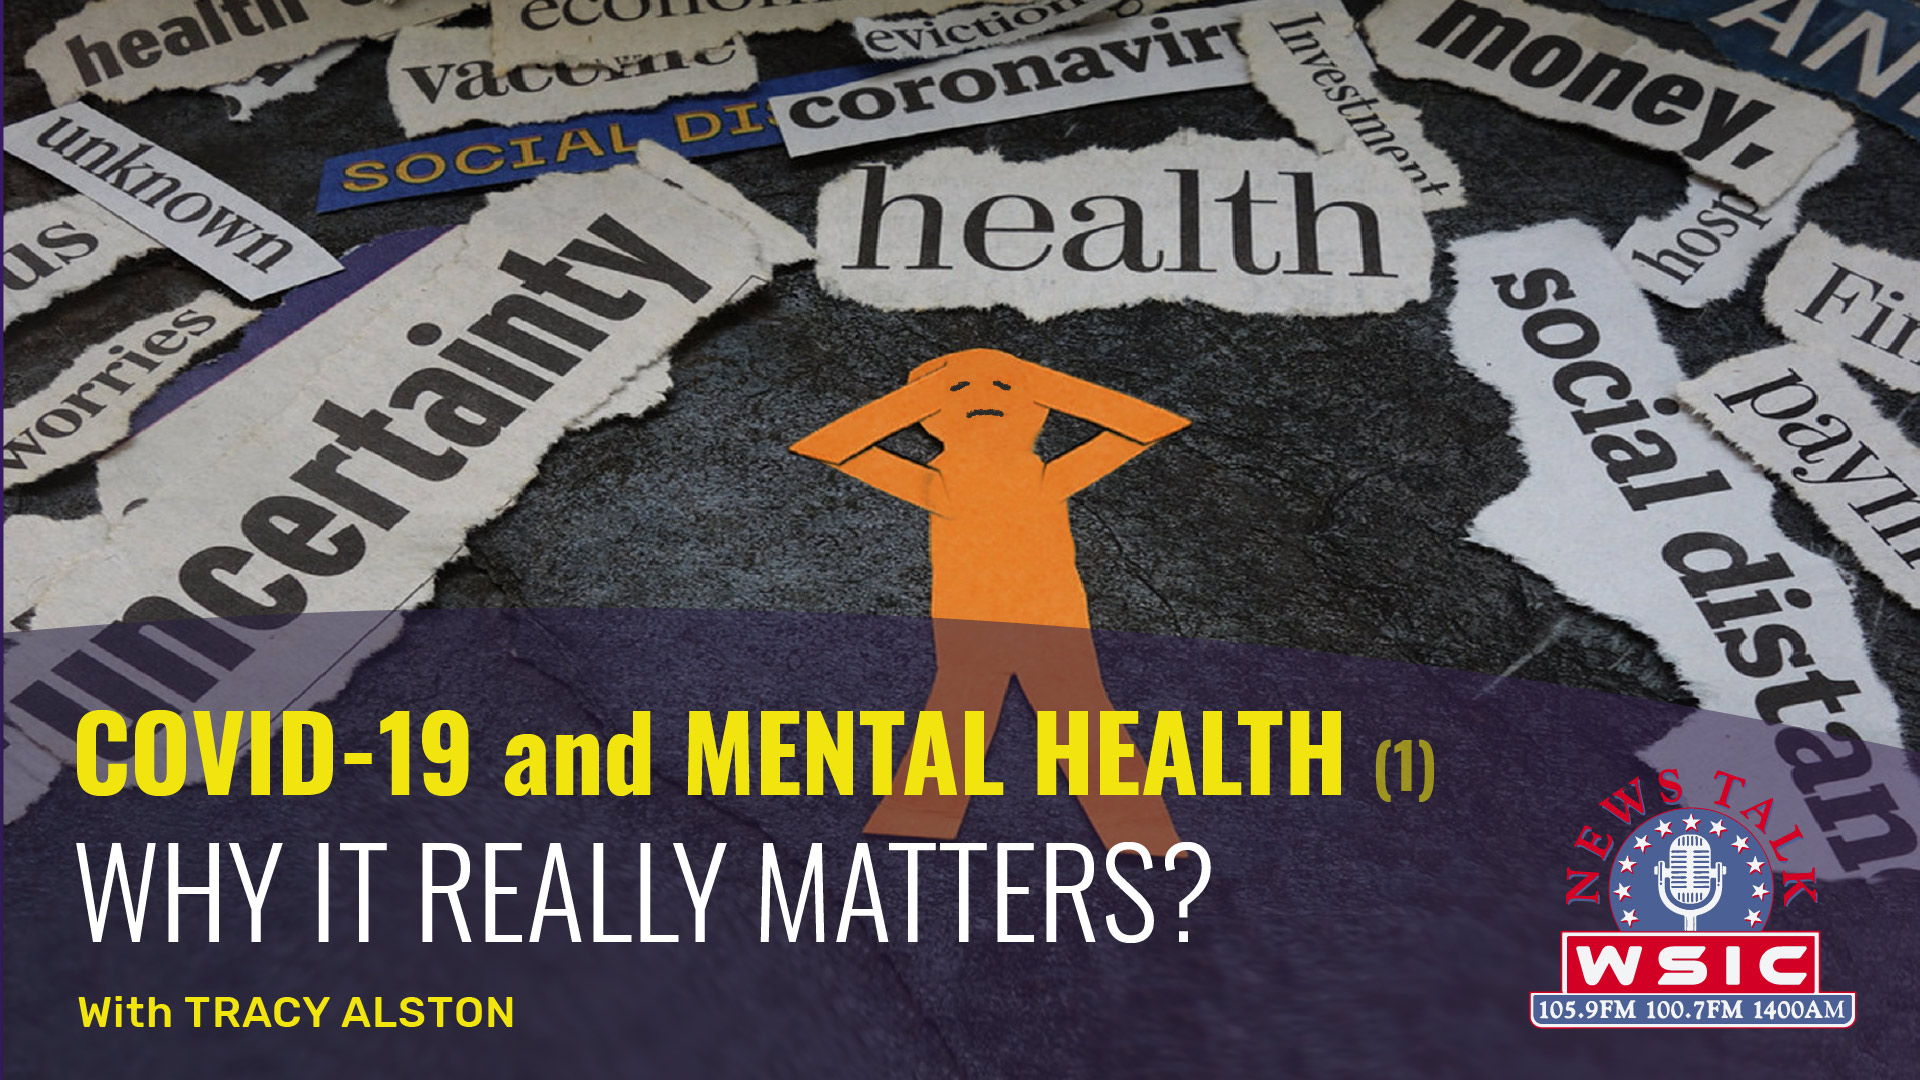 Covid-19 and Mental Fitness, why it matters